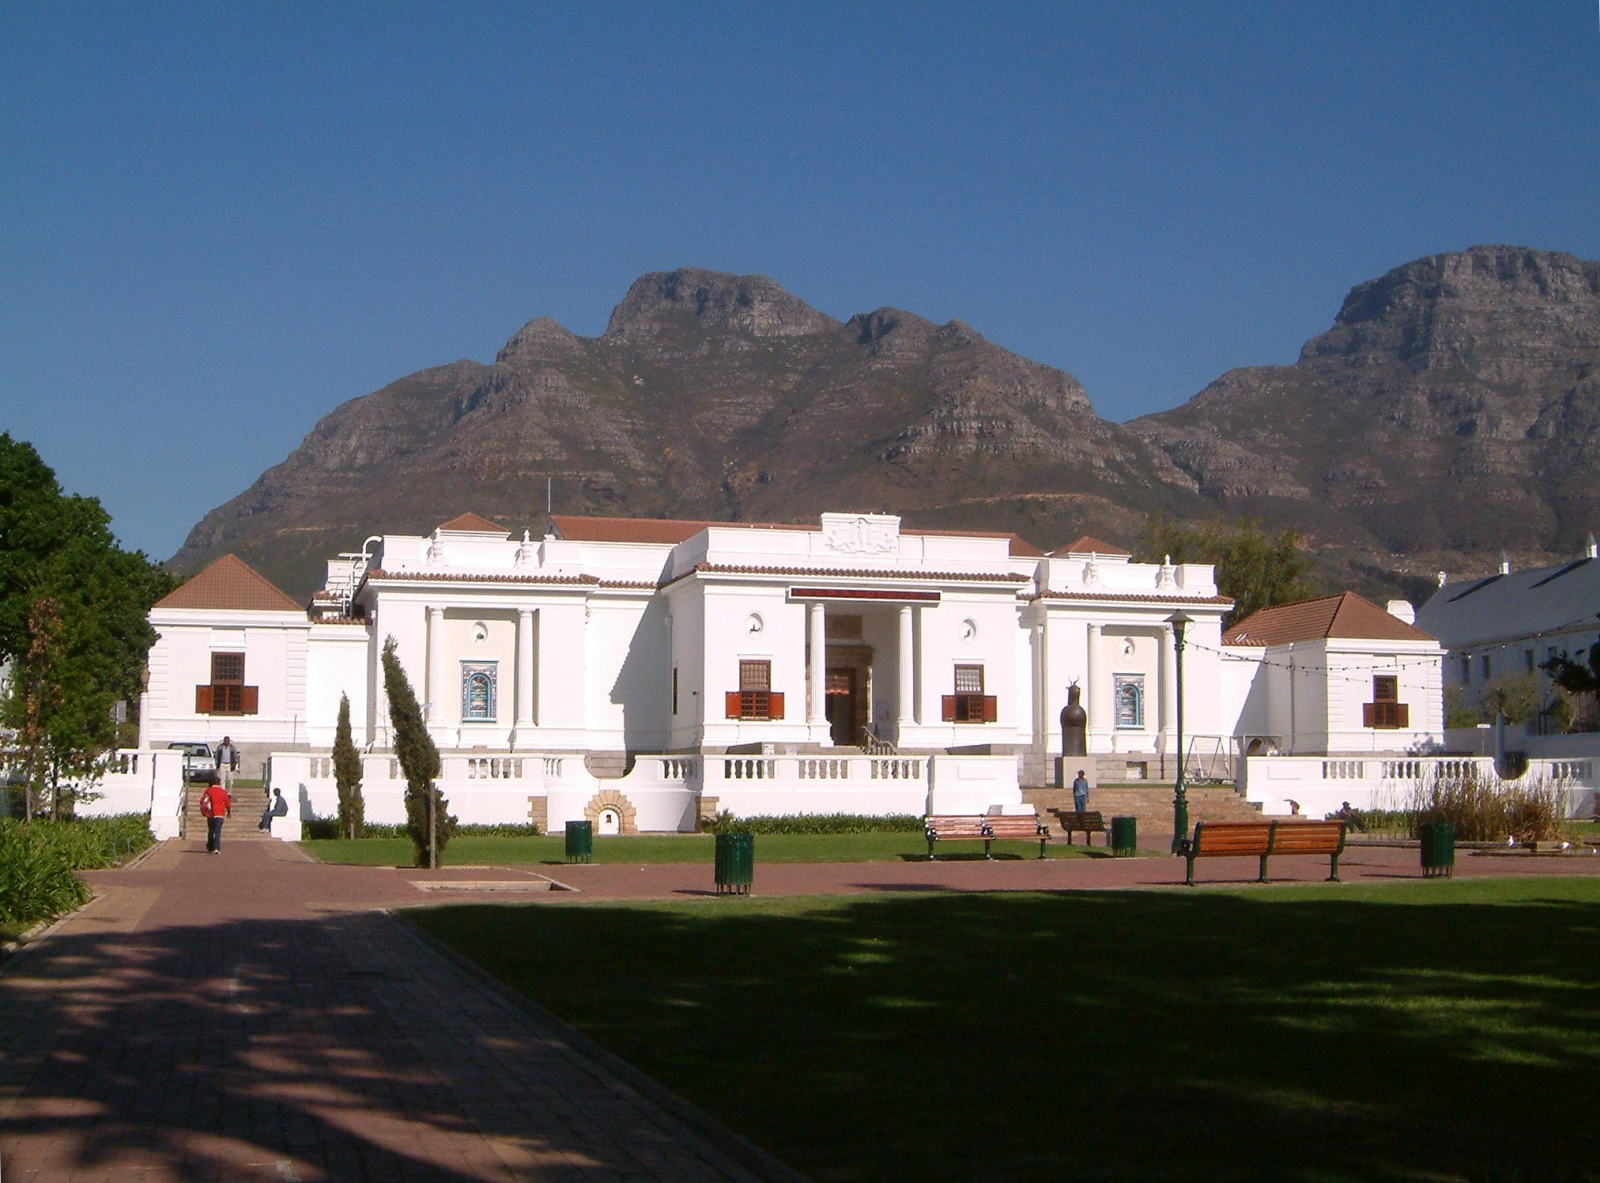 Iziko South African National Gallery